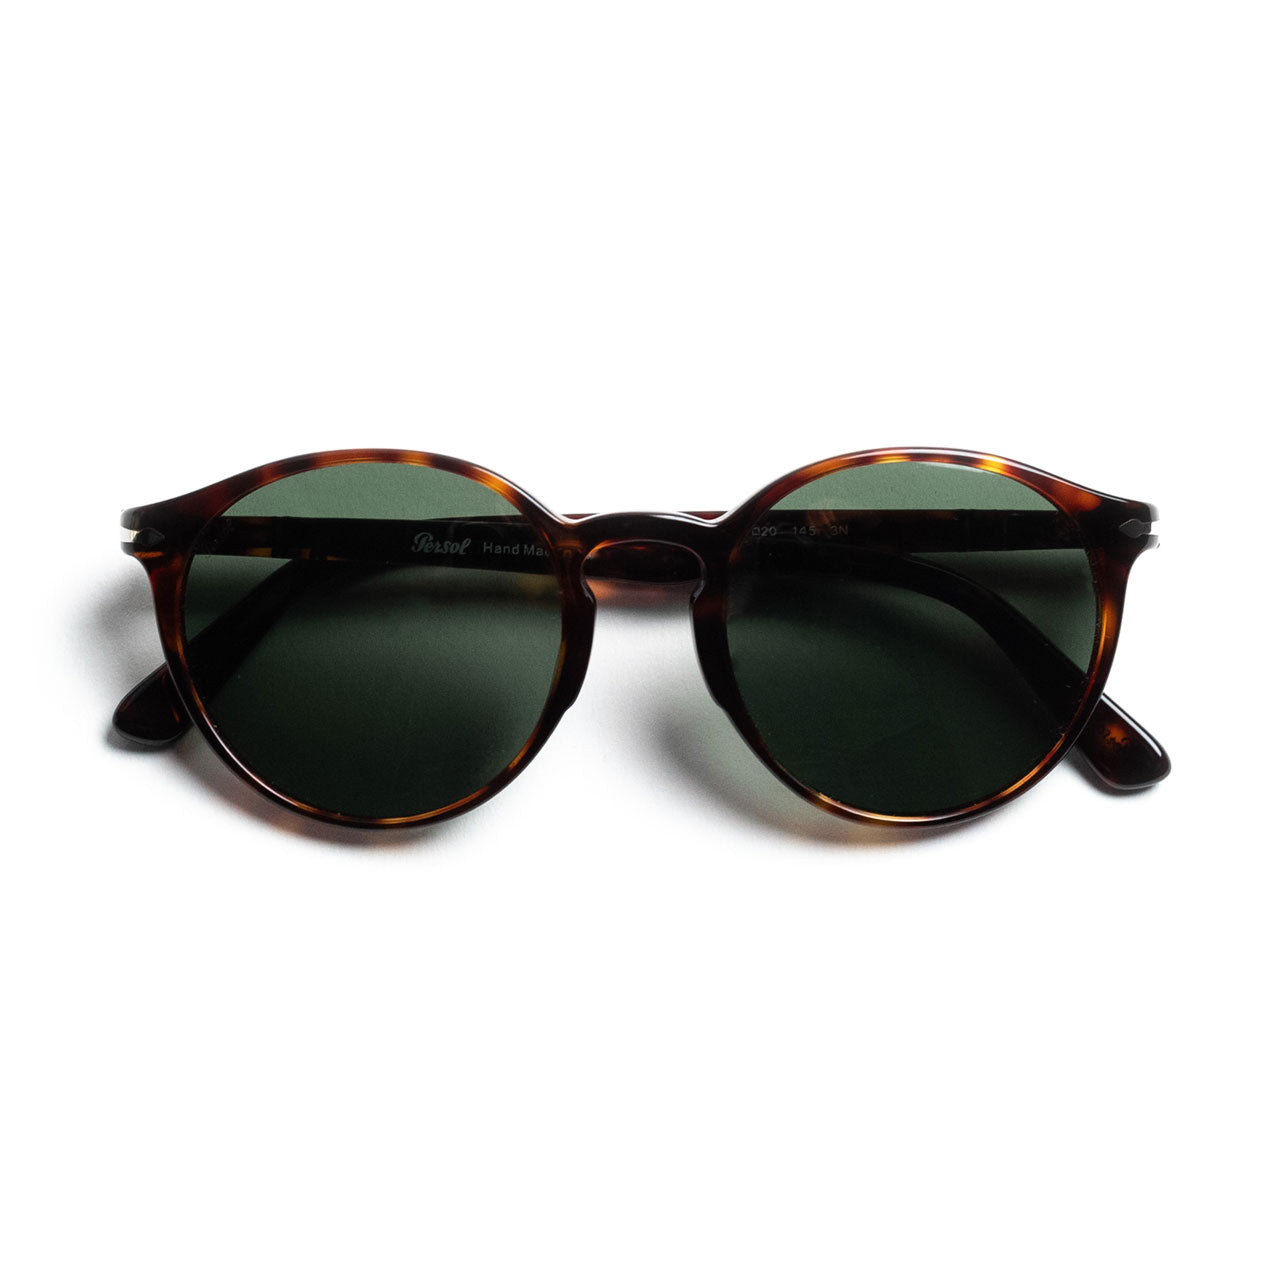 Persol 3171S Sunglasses